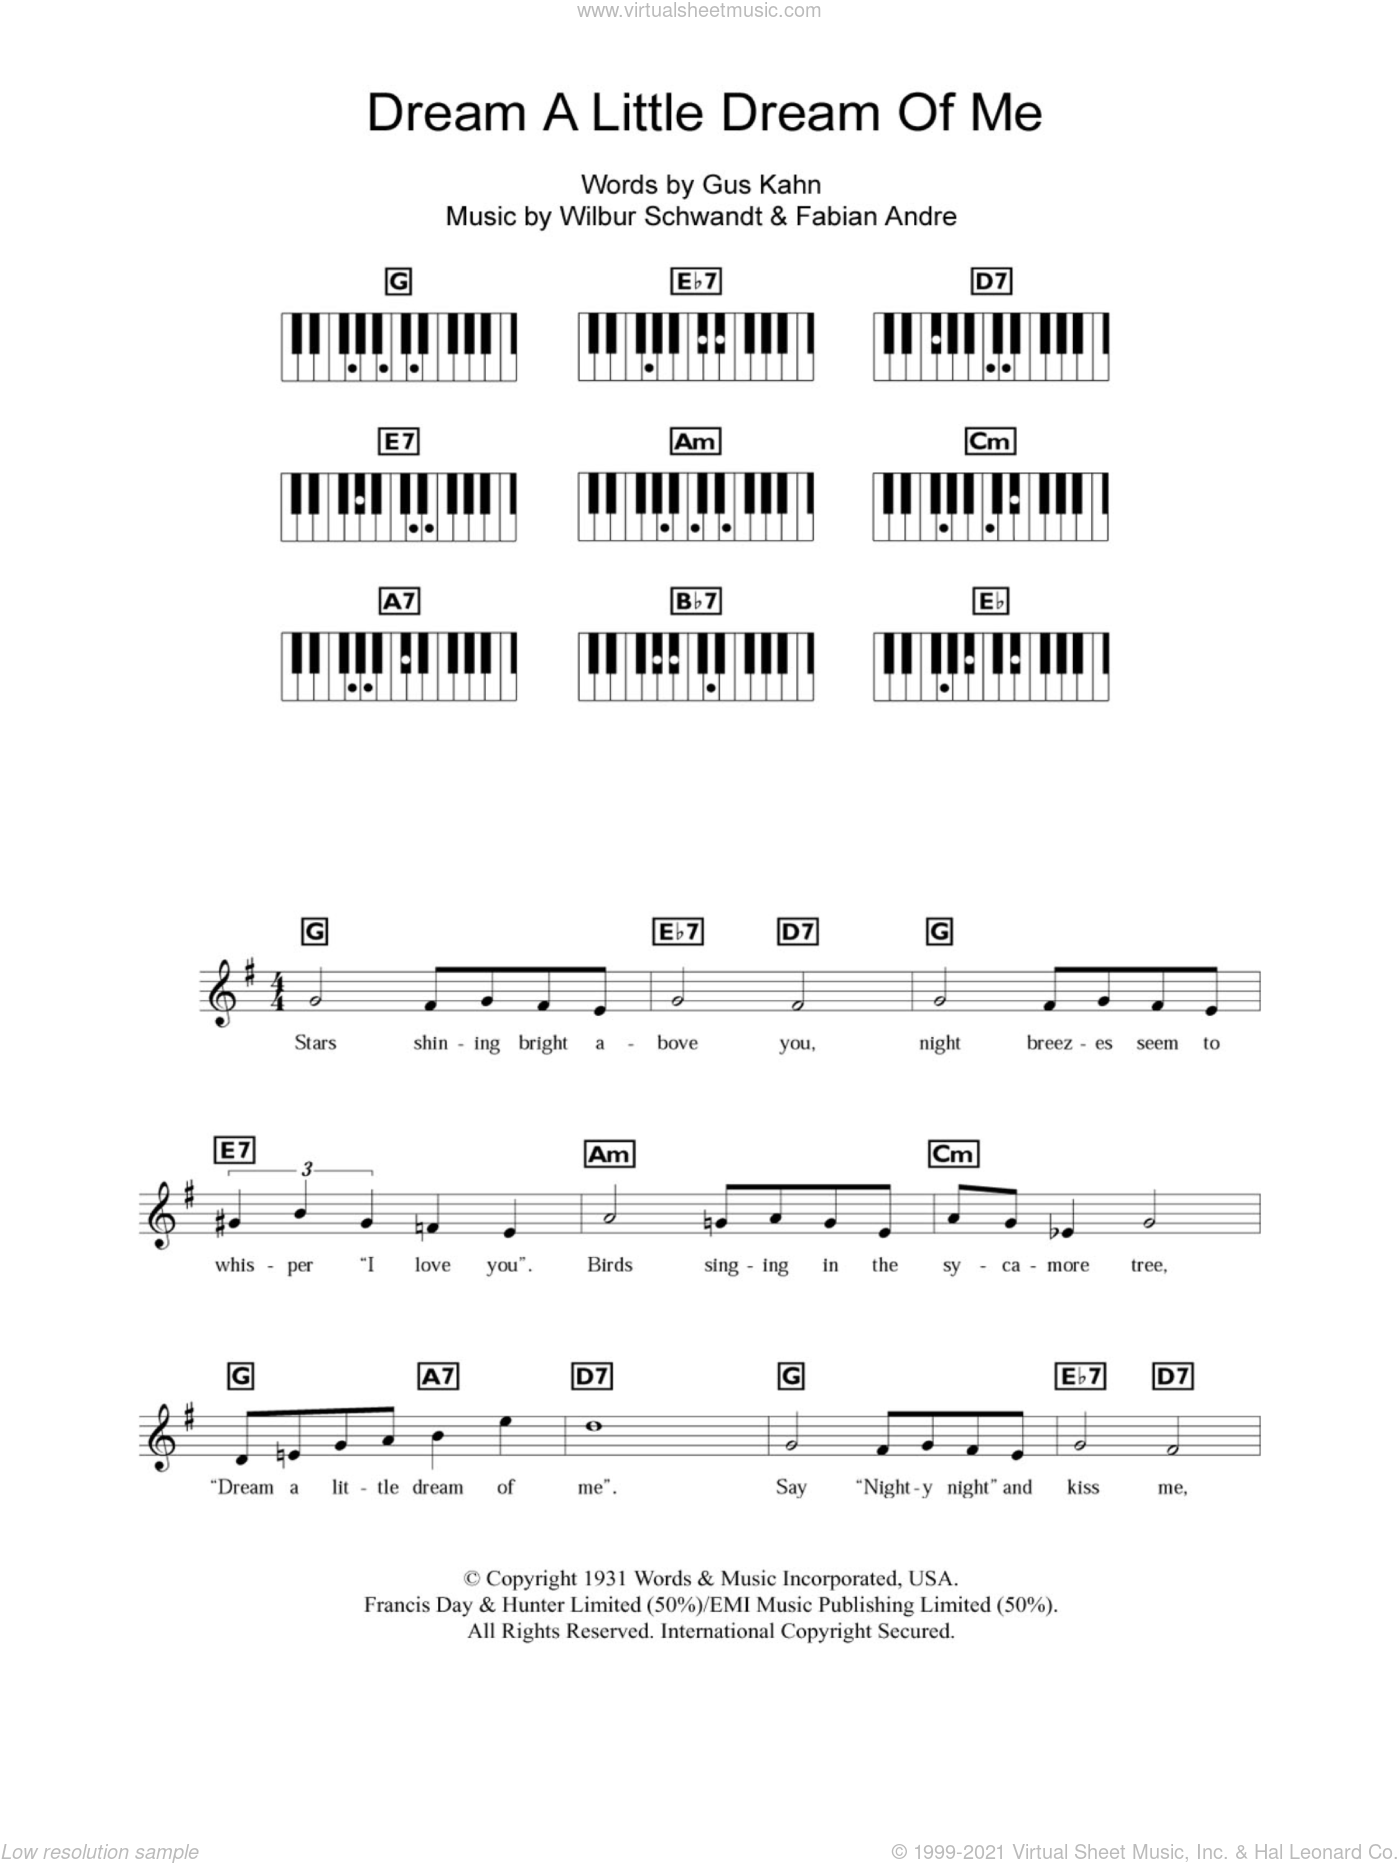 Dream A Little Dream Of Me sheet music for piano solo (chords, lyrics, melody) by Wilbur Schwandt